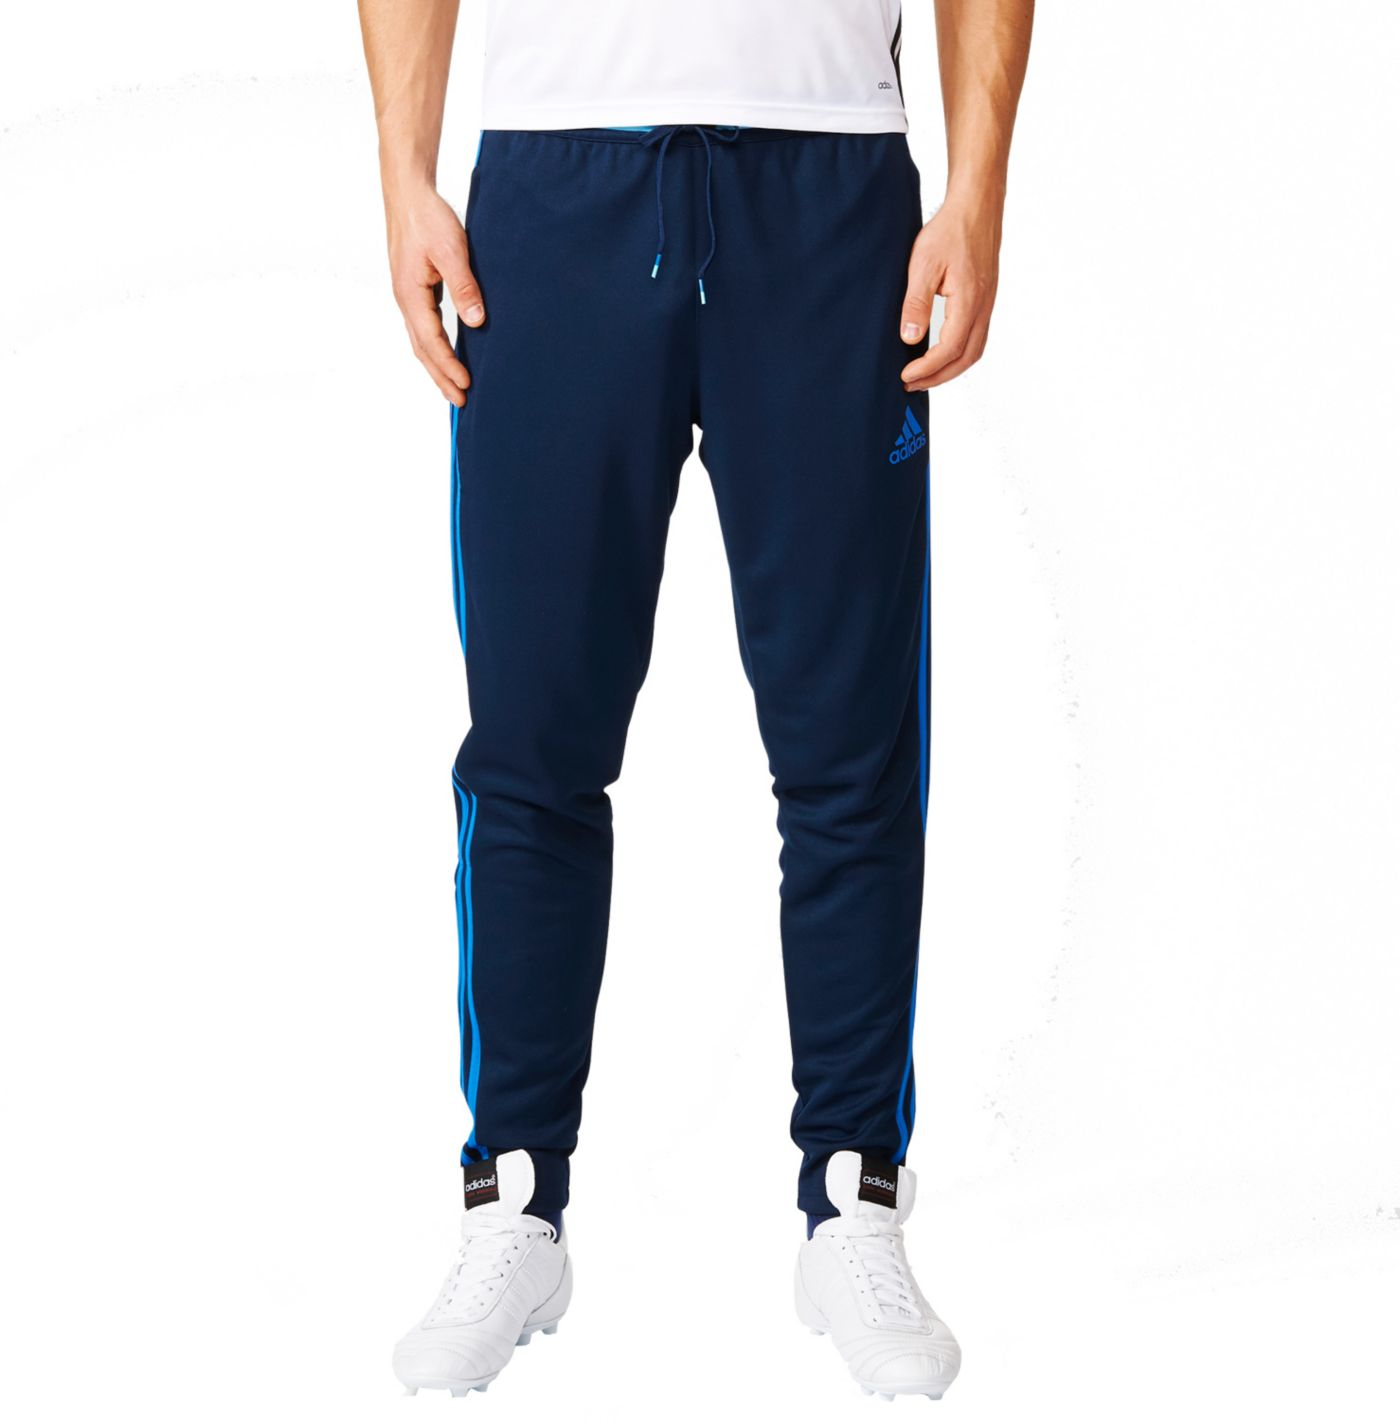 adidas Men's Condivo 16 Soccer Training Pants